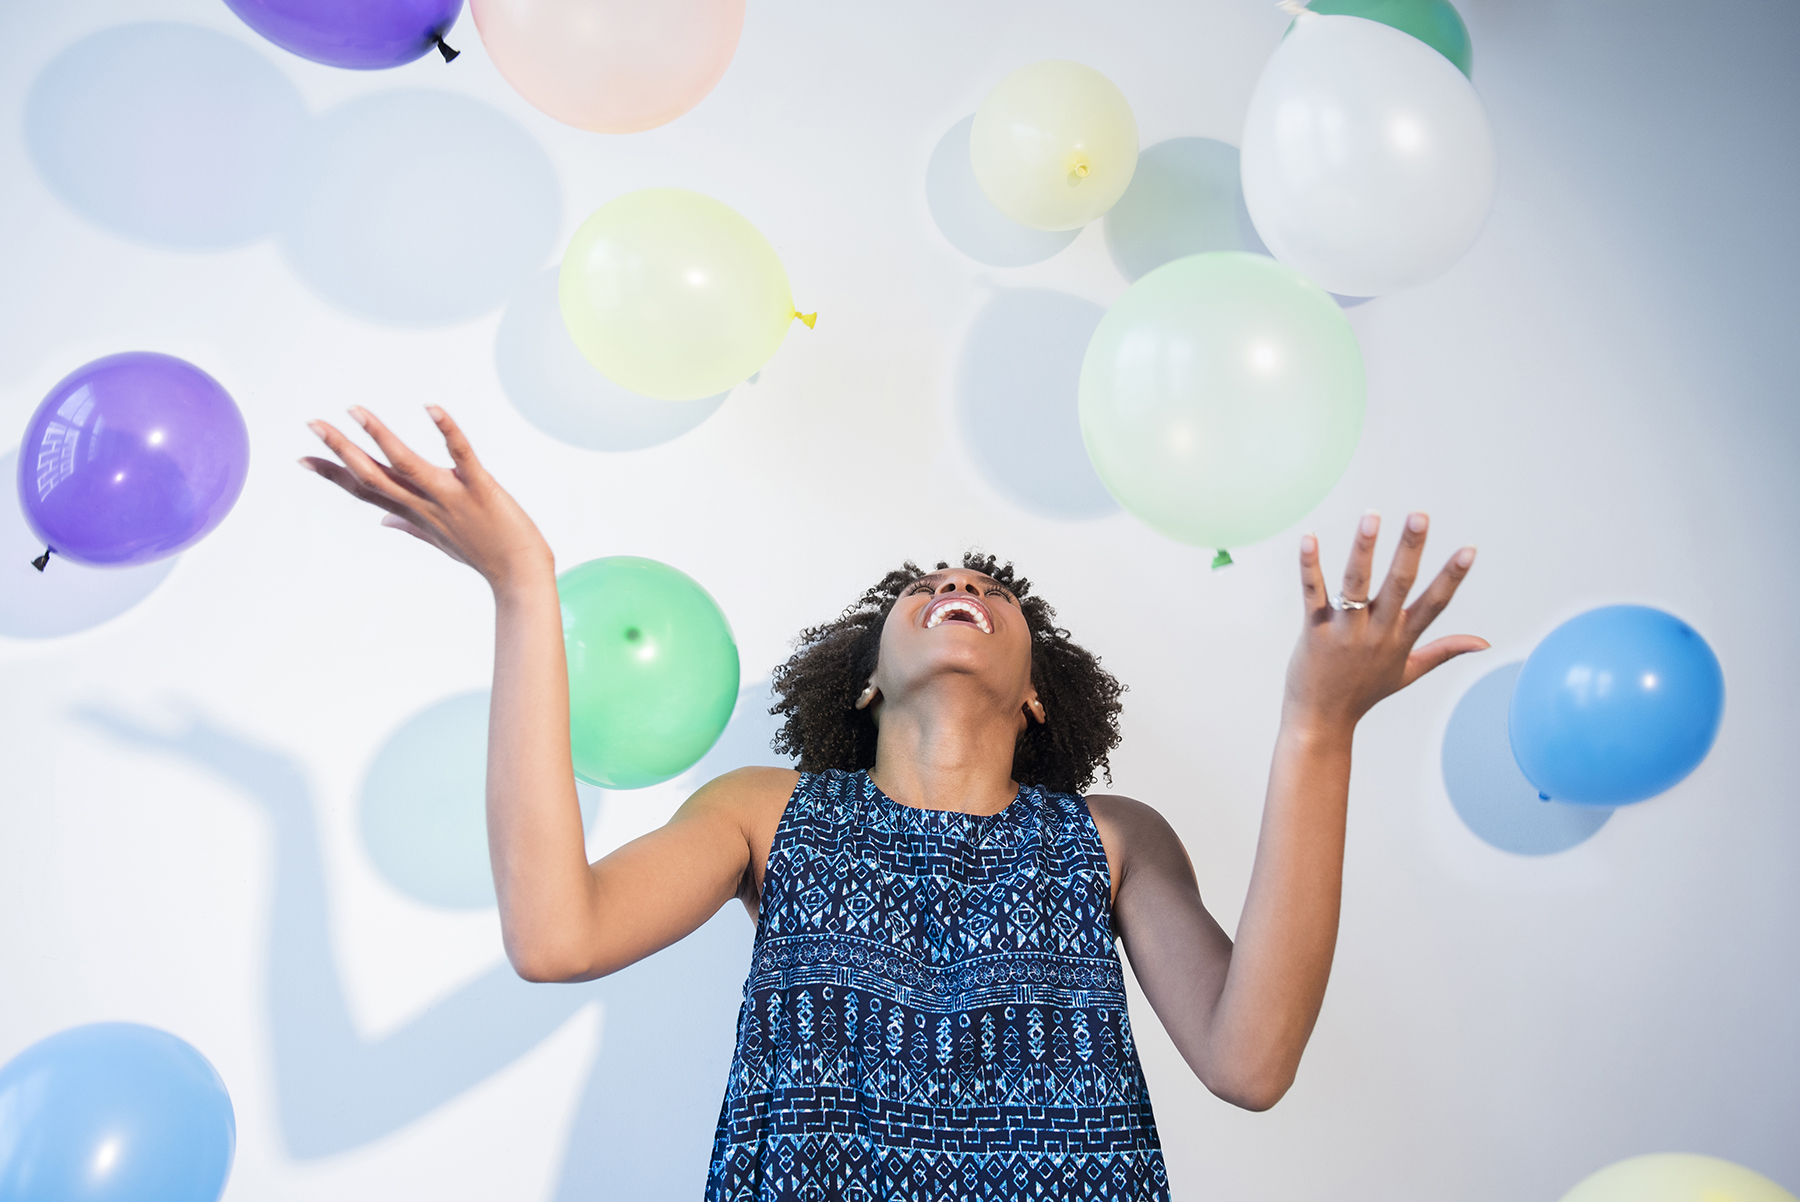 Woman being rained down on by balloons